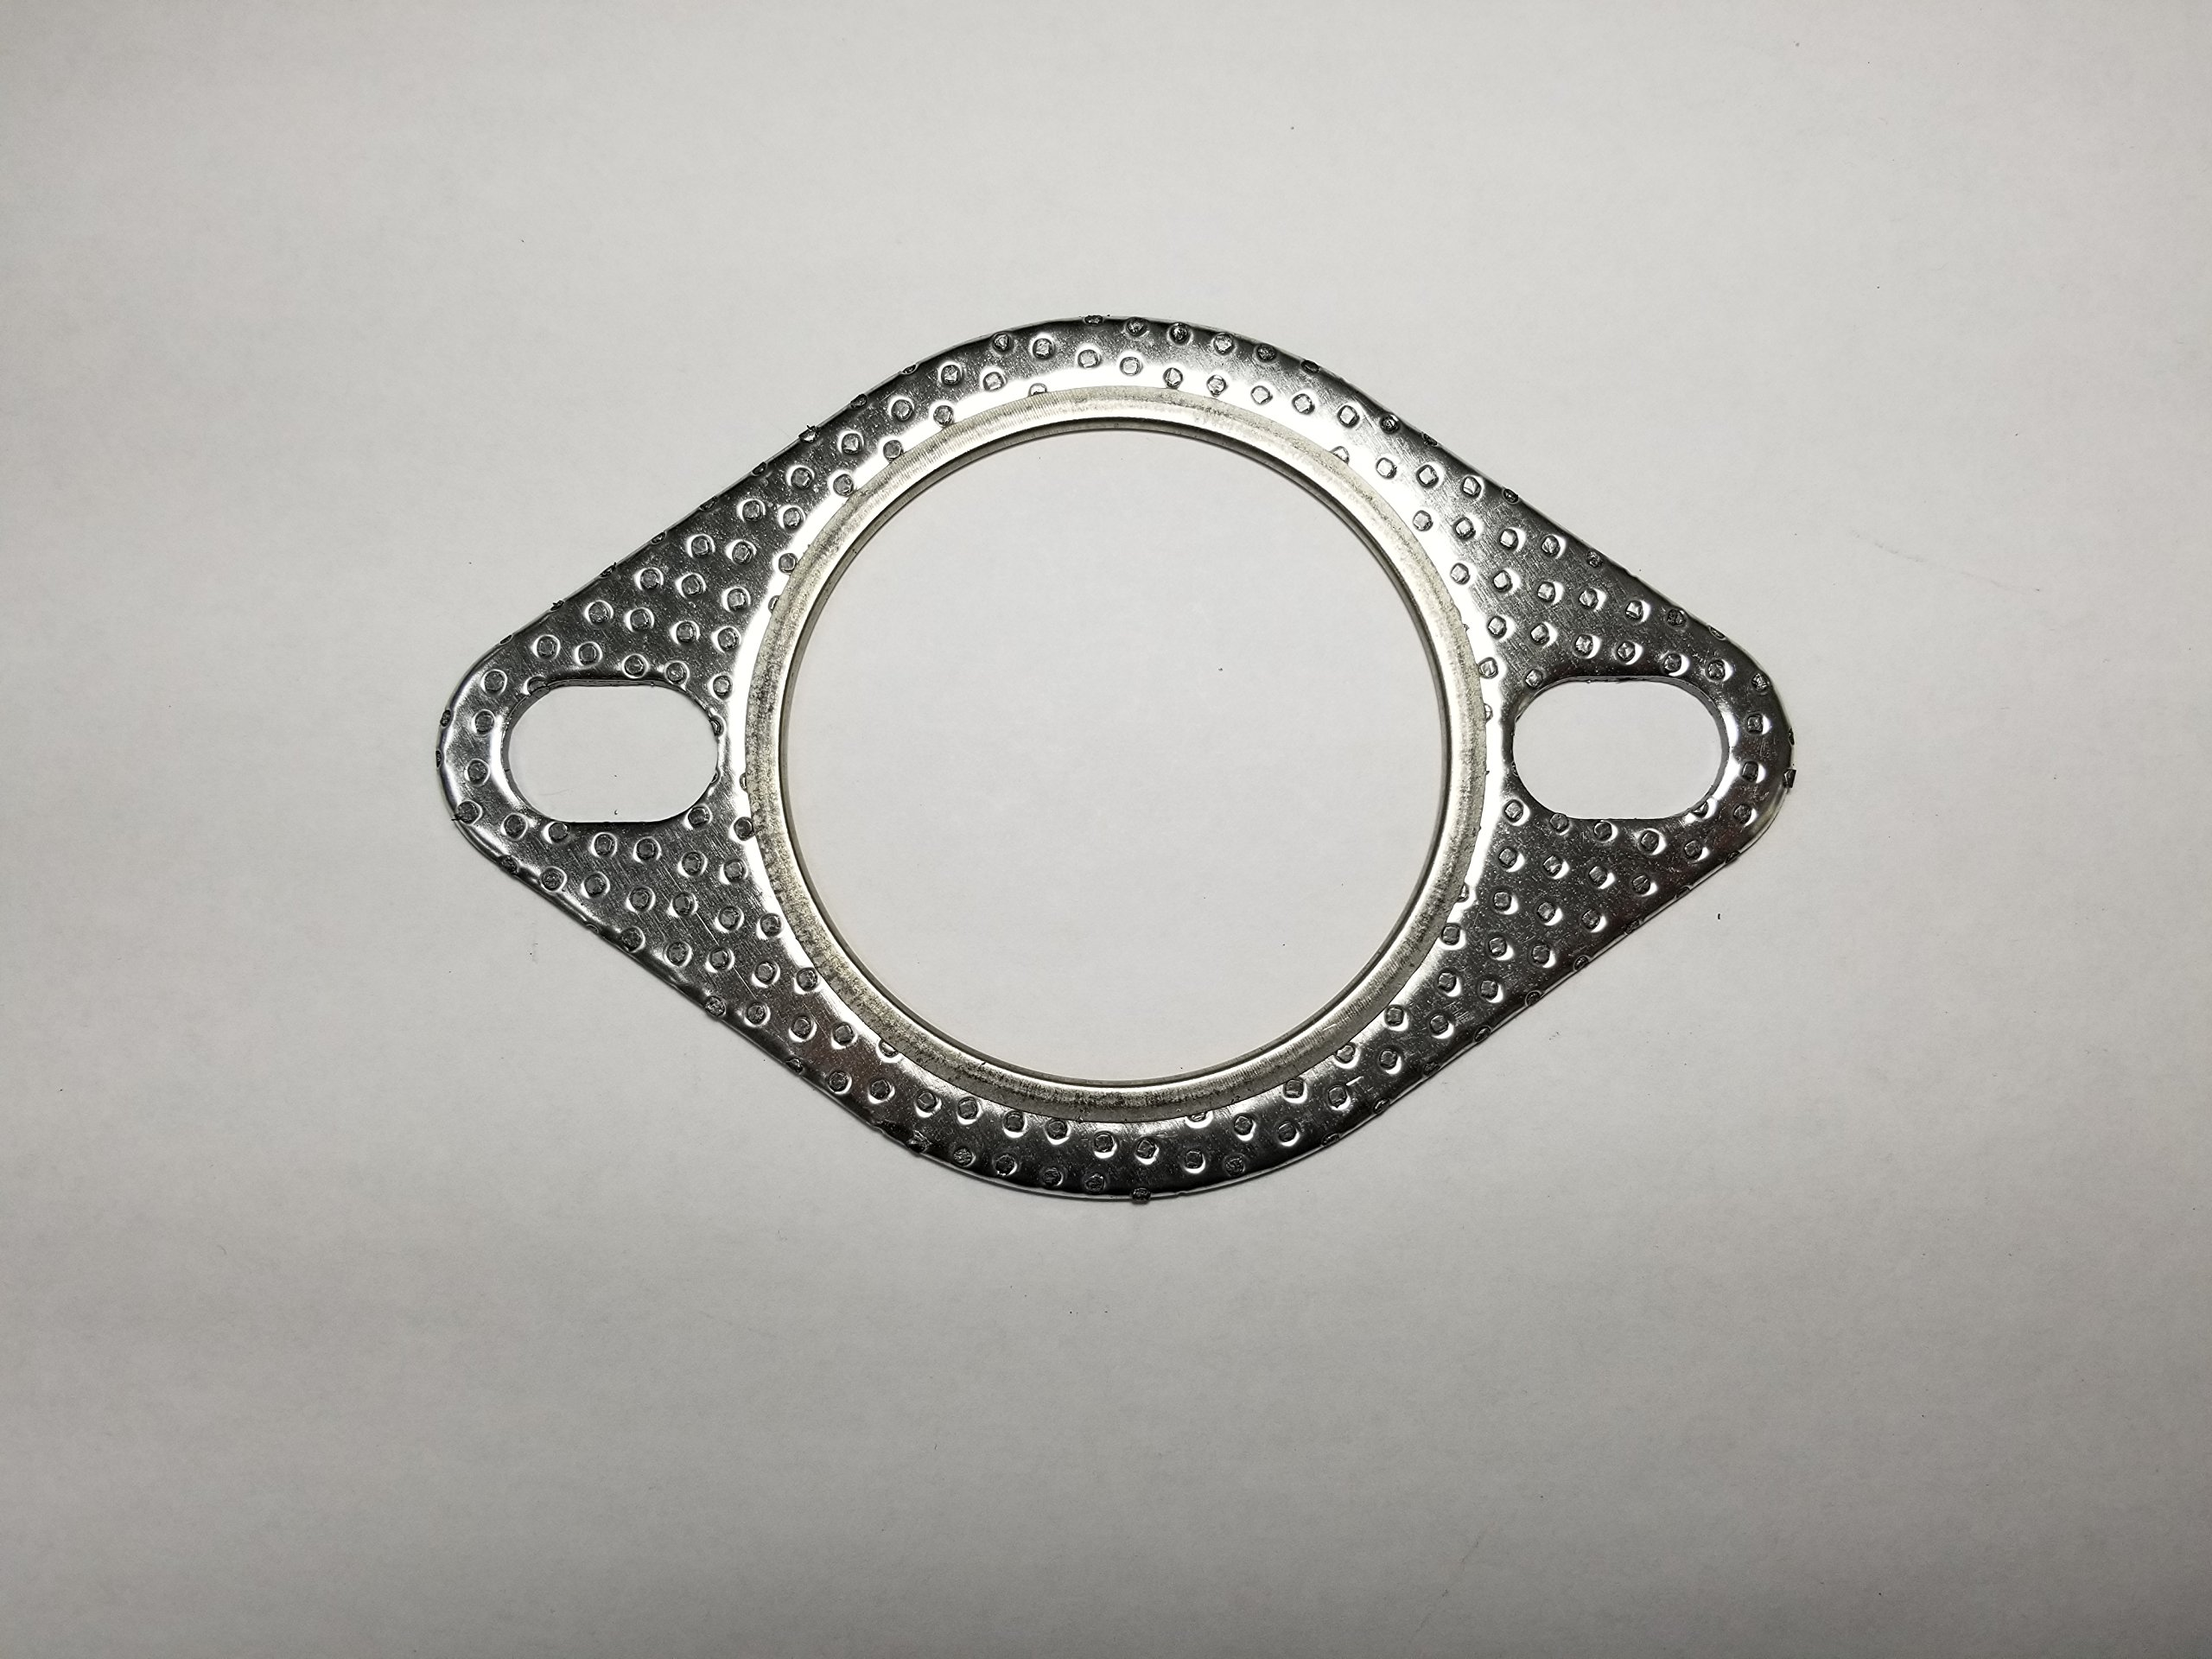 2.5'' ID 2 Bolt MLSG High Temp Exhaust Gasket (Qty 2) - Heavy Duty -120-06310-0001 (2.5 Inch) - Ticon Industries